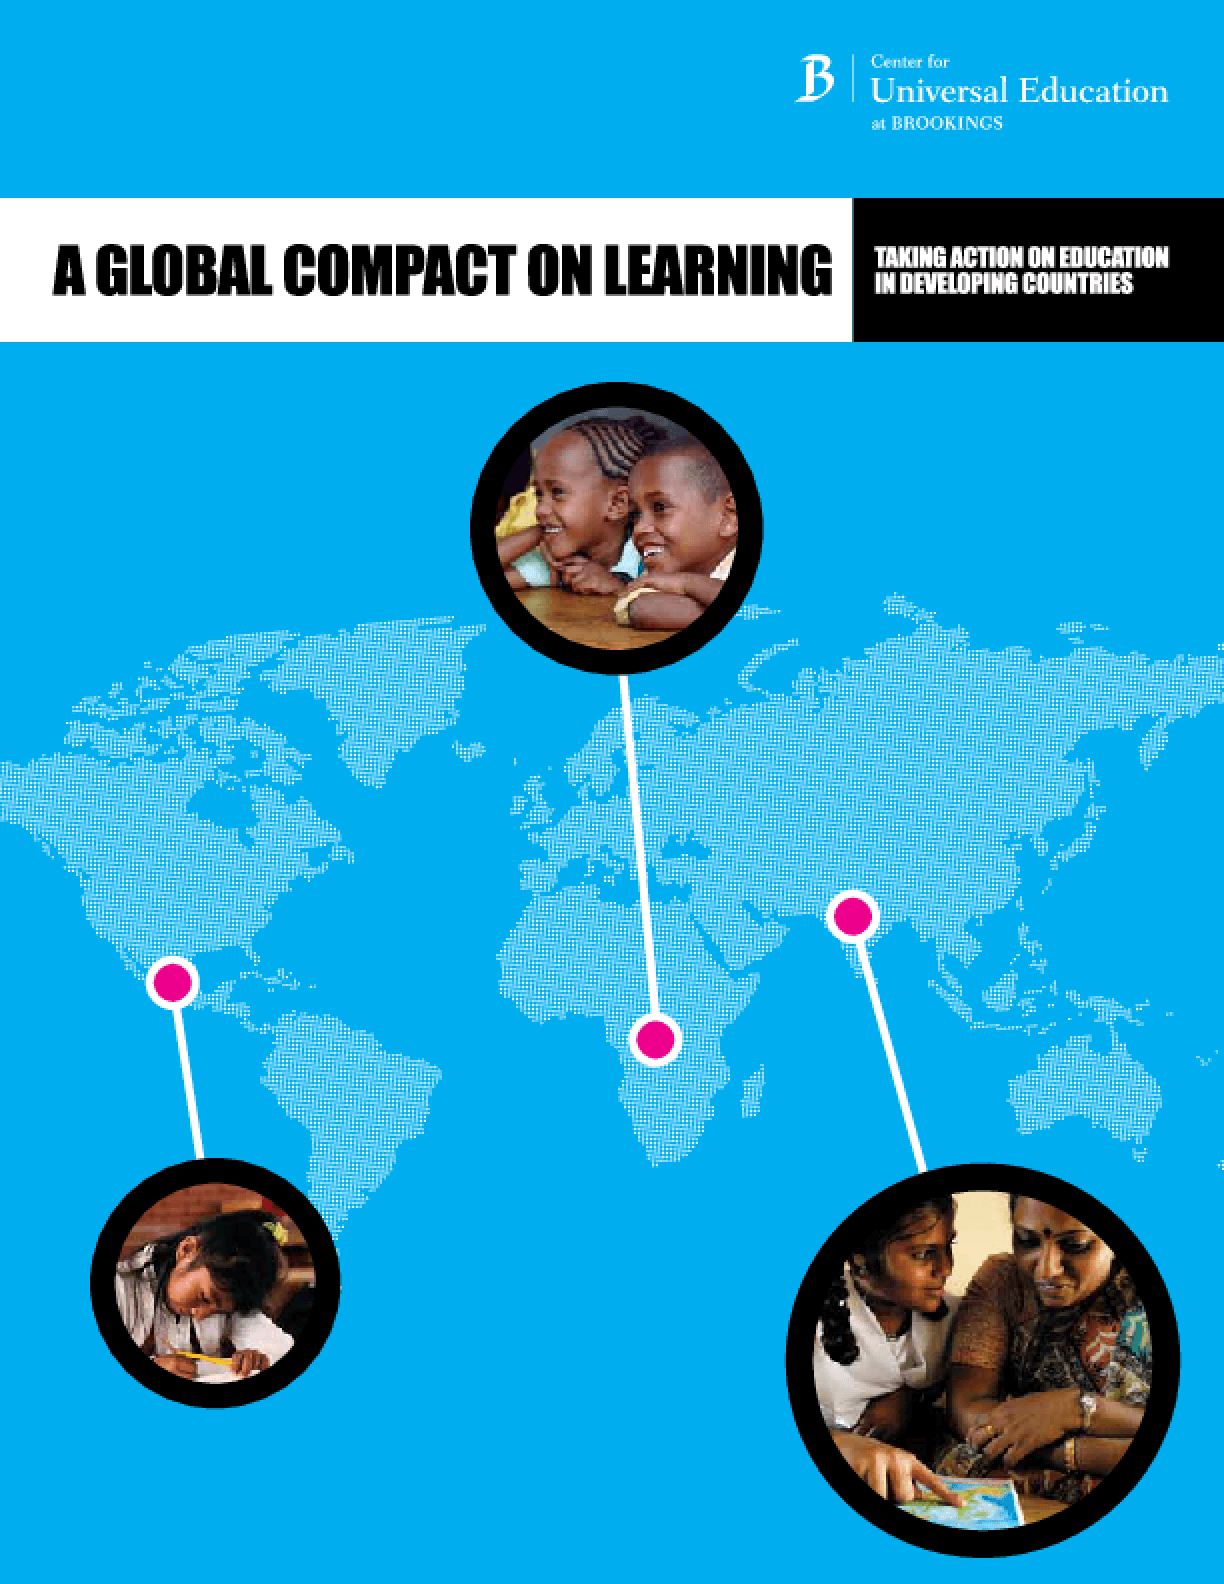 A Global Compact on Learning: Taking Action on Education in the Developing Countries